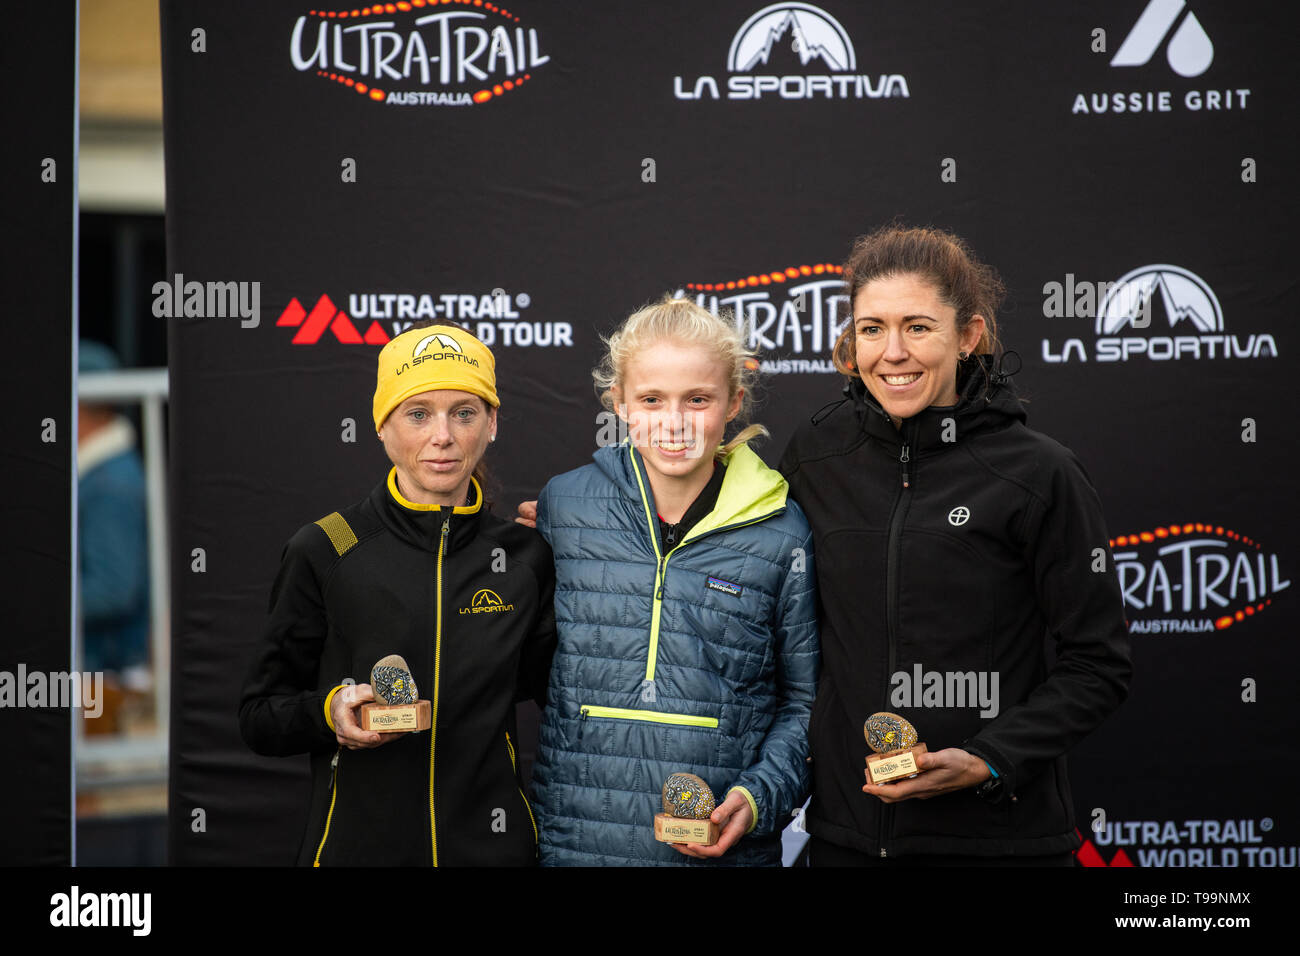 Blue Mountains, Australia - April 16 2019: Ultra-Trail Australia UTA11 race. All place holders in the women's event on the podium - Stock Image